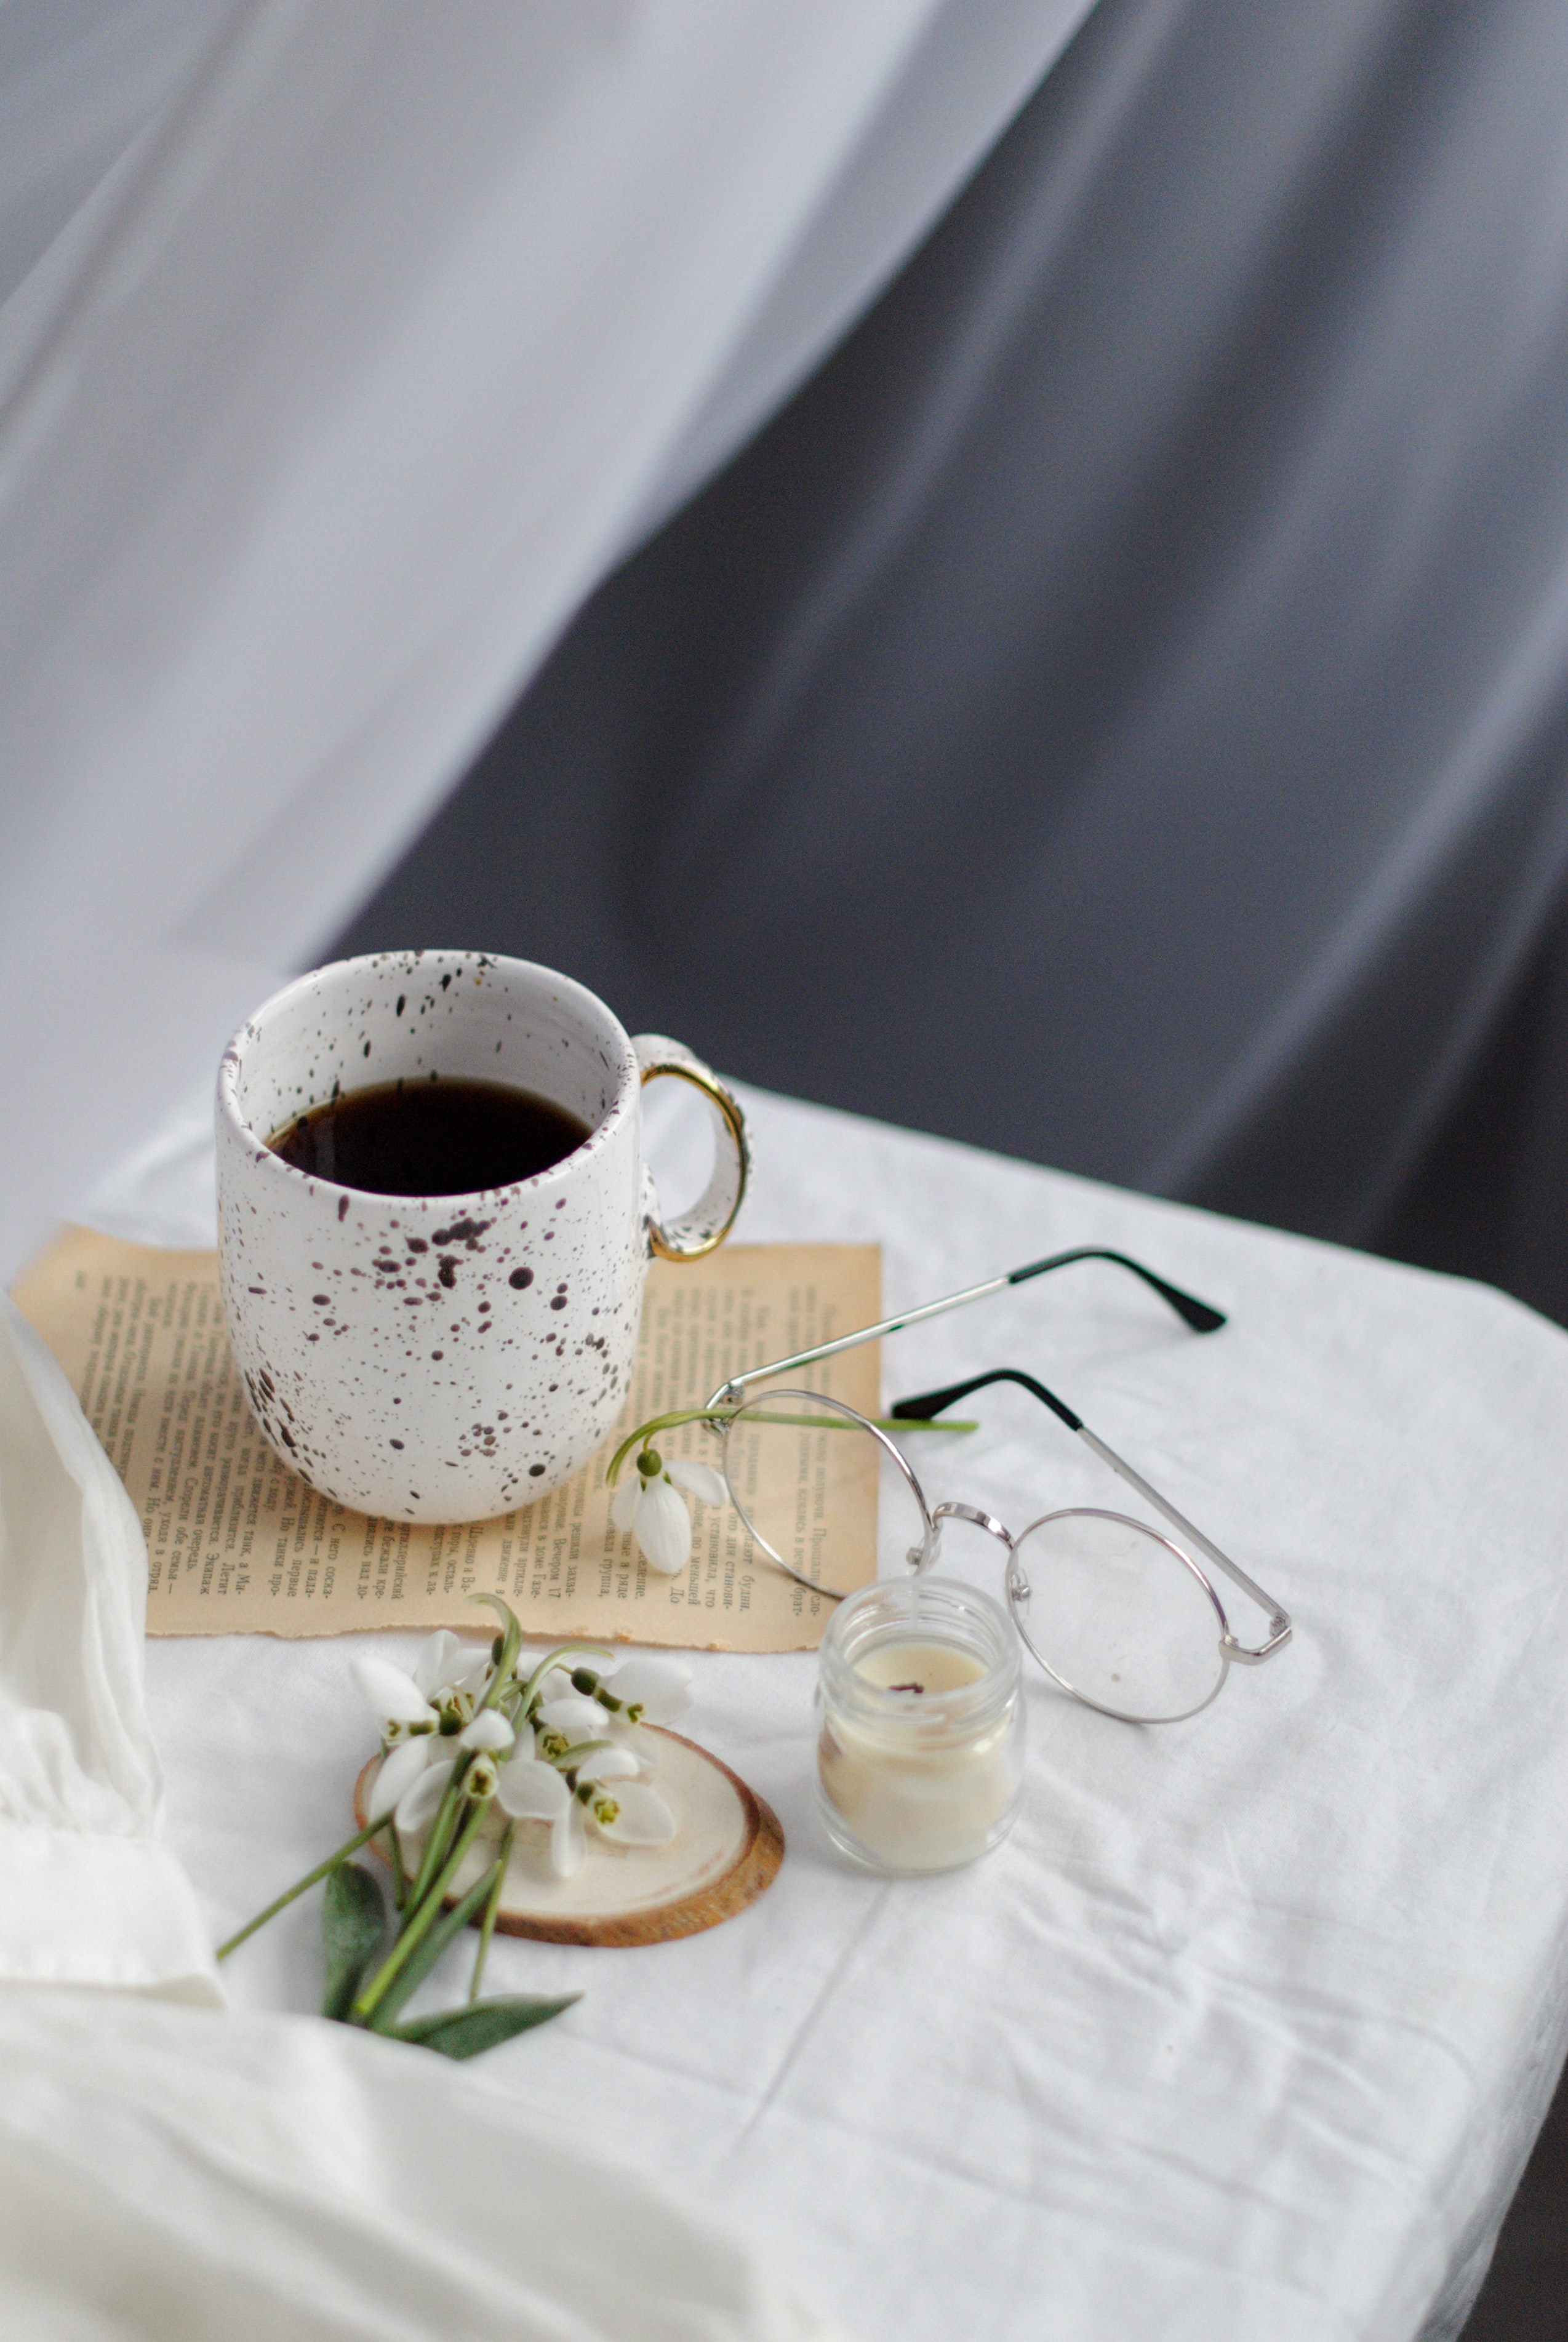 144375 download wallpaper Miscellanea, Miscellaneous, Spring, Coffee, Glasses, Spectacles, Flowers screensavers and pictures for free